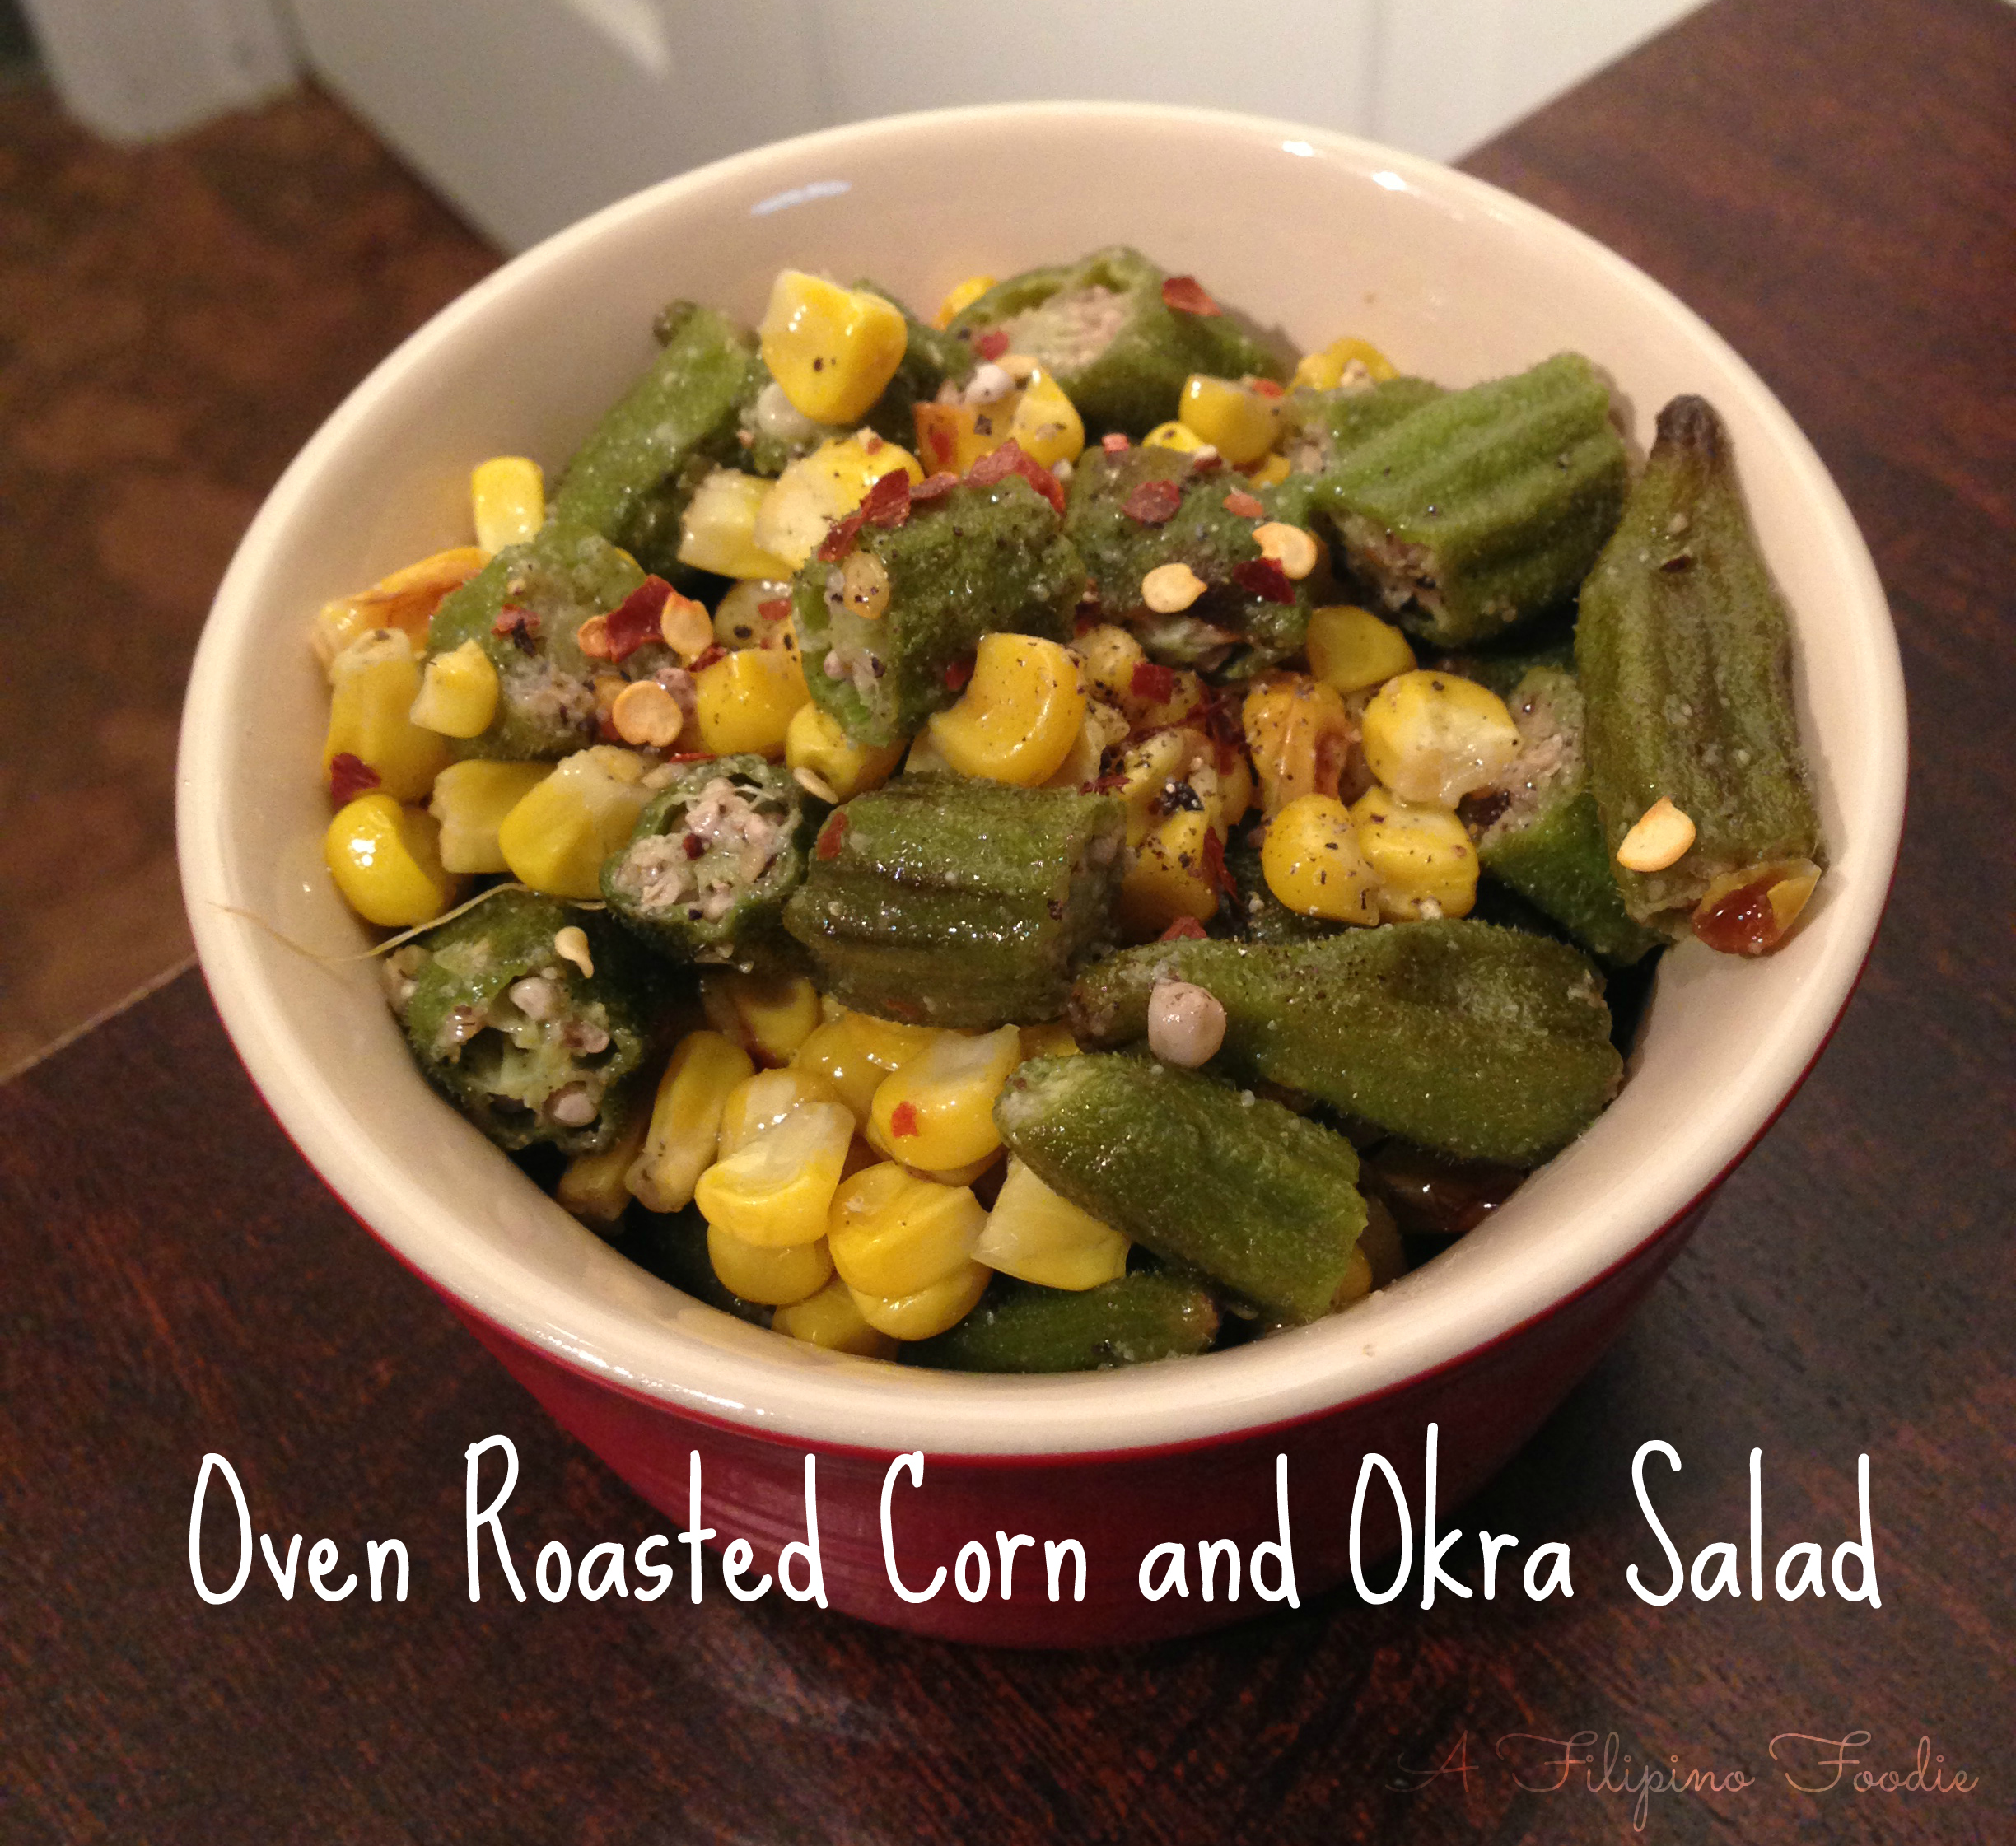 Oven Roasted Corn and Okra Salad | A Filipino Foodie